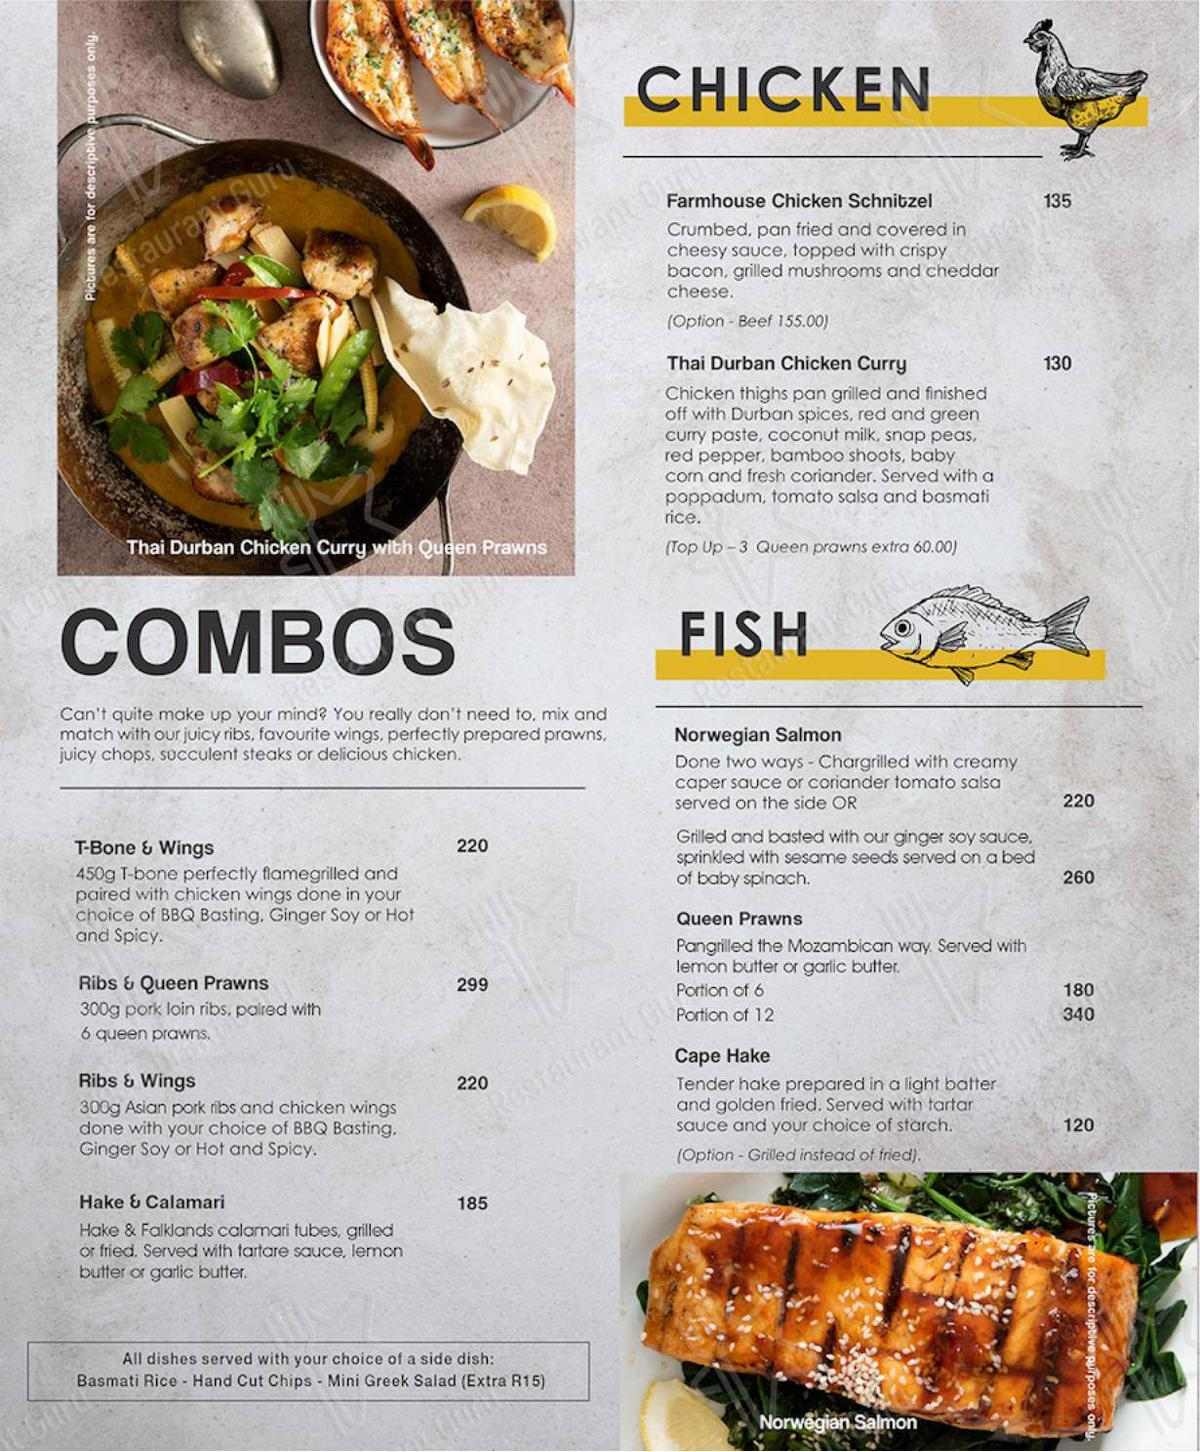 Mike's Kitchen in Johannesburg - Delivery Menu